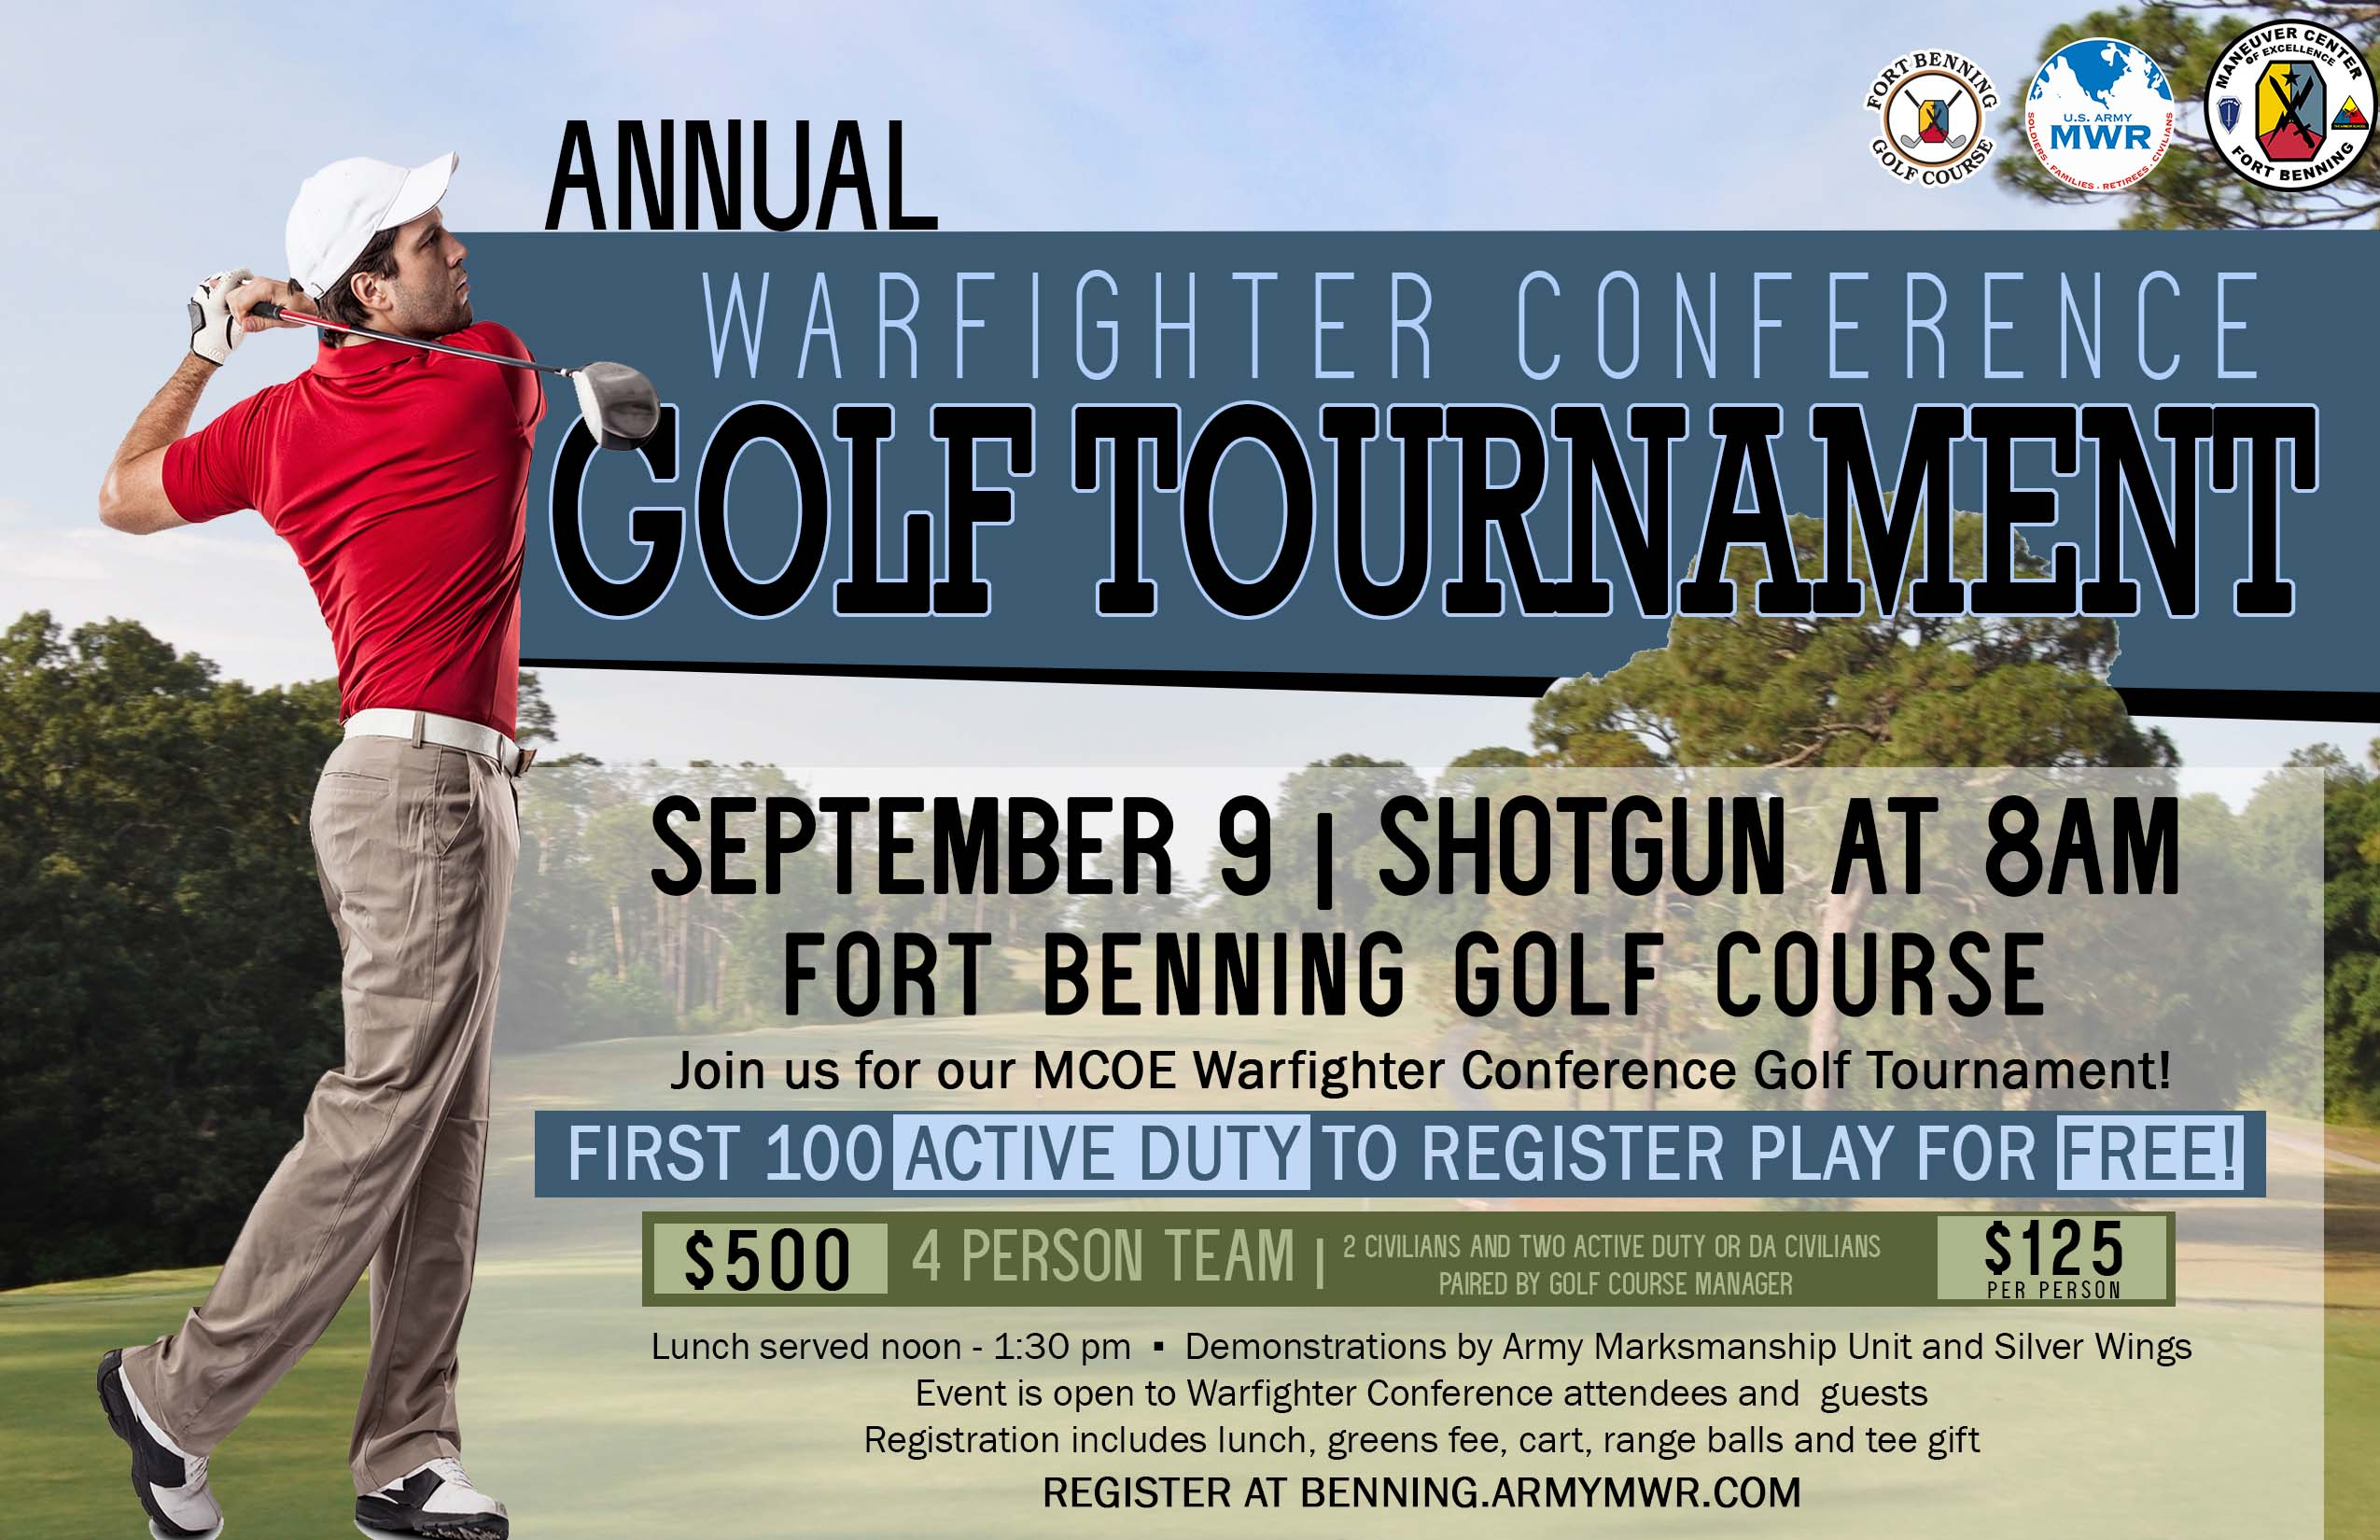 Warfighter Conference Golf Tournament